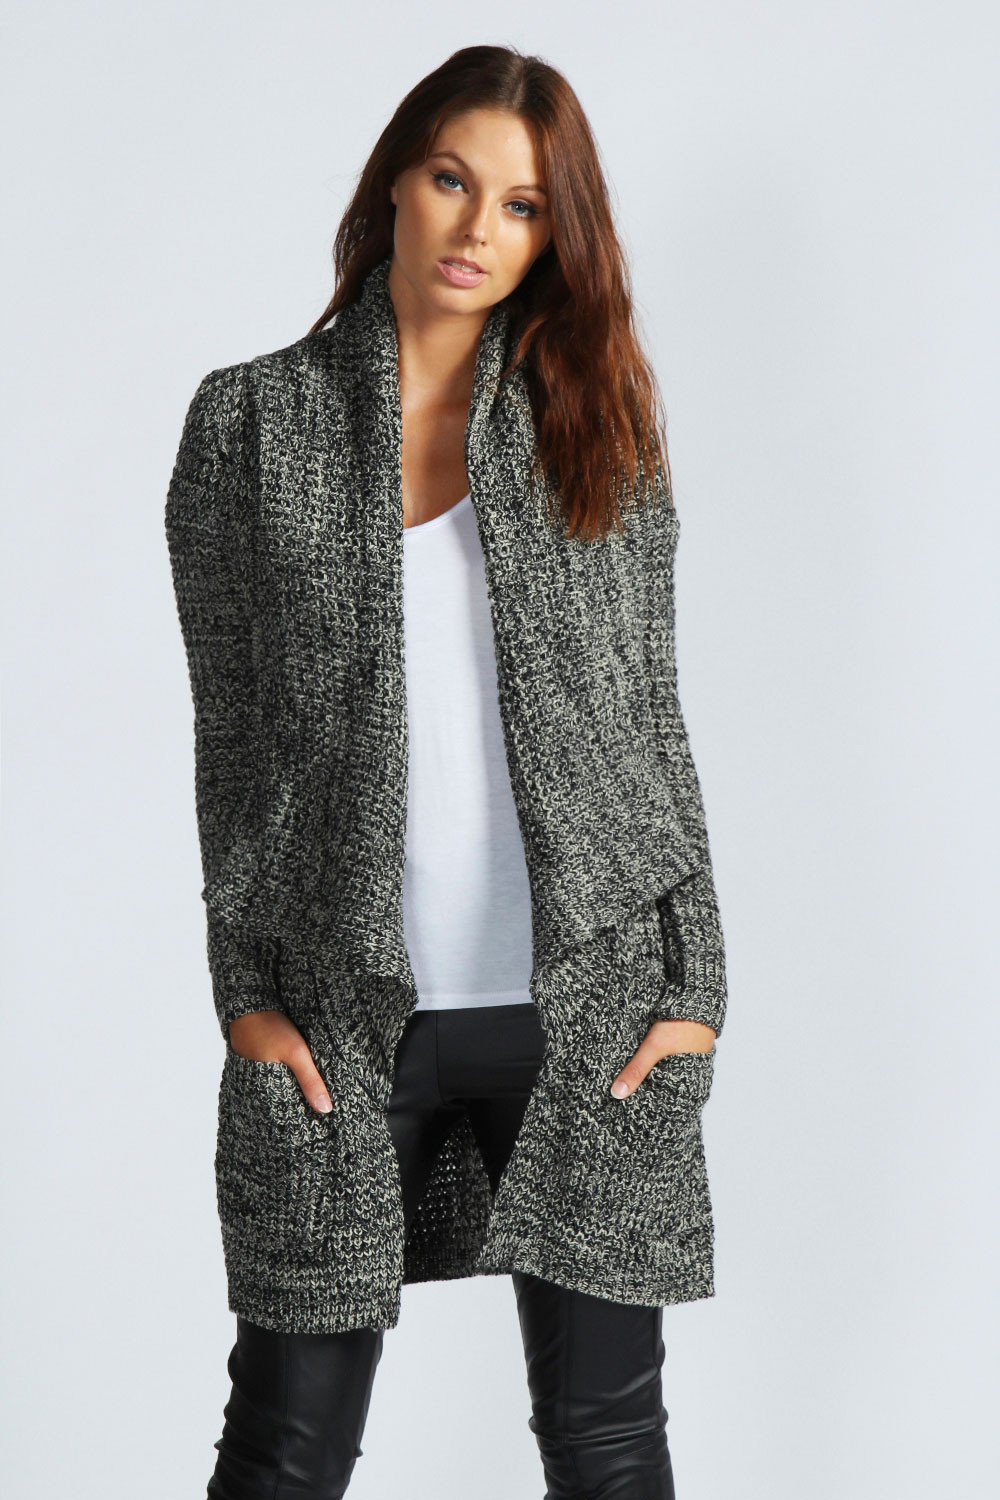 Knit Cardigan Lovely Boohoo Aliah Chunky Marl Knit Oversized Cardigan Of Delightful 41 Ideas Knit Cardigan